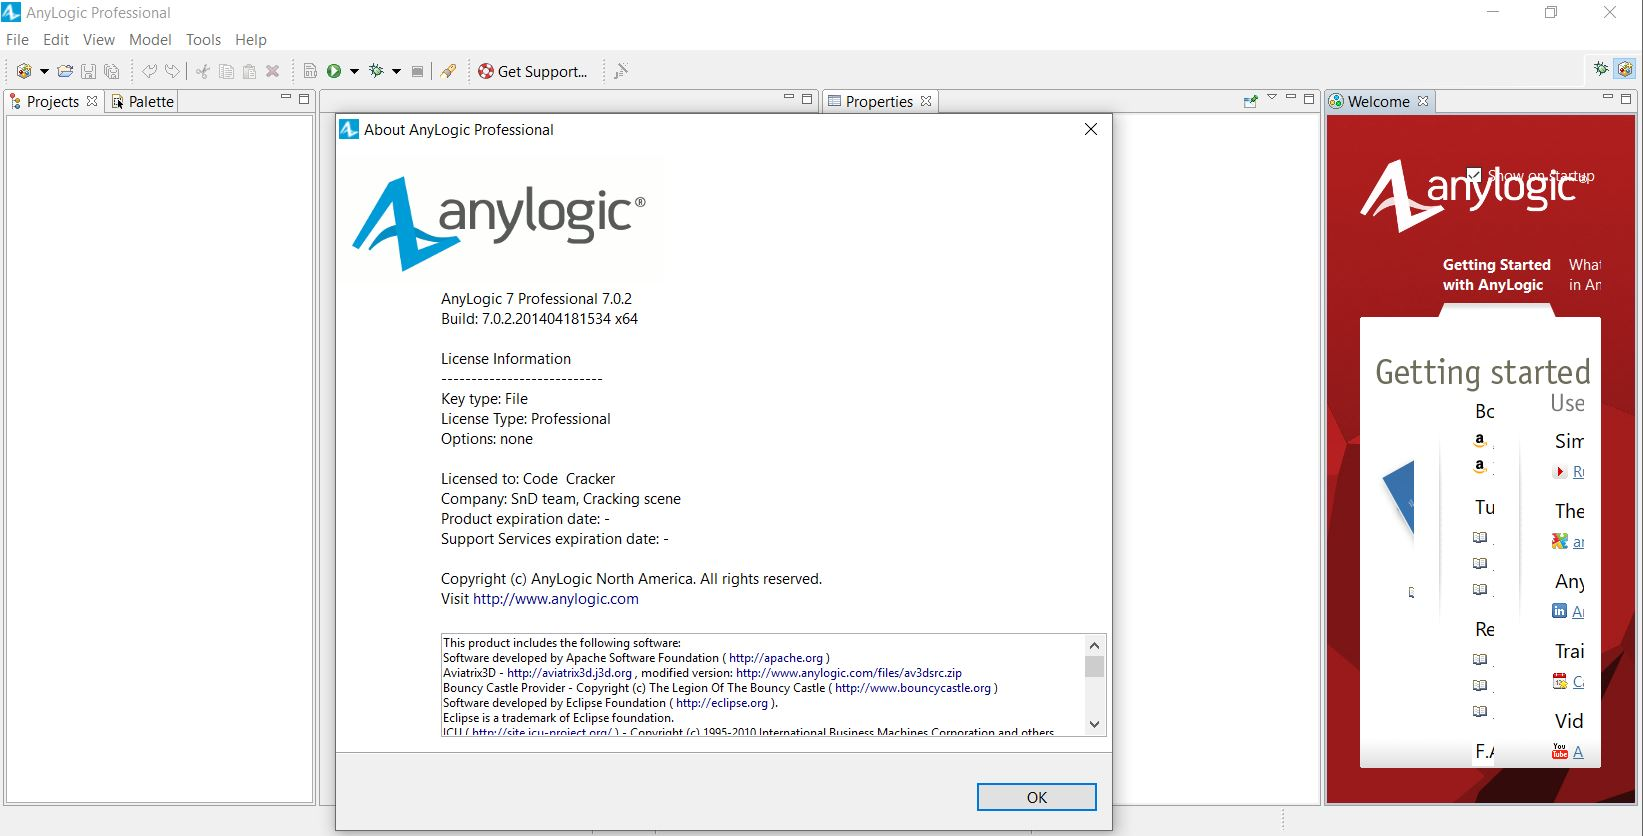 Working with AnyLogic Professional 7.0.2 Multilingual x64 full license